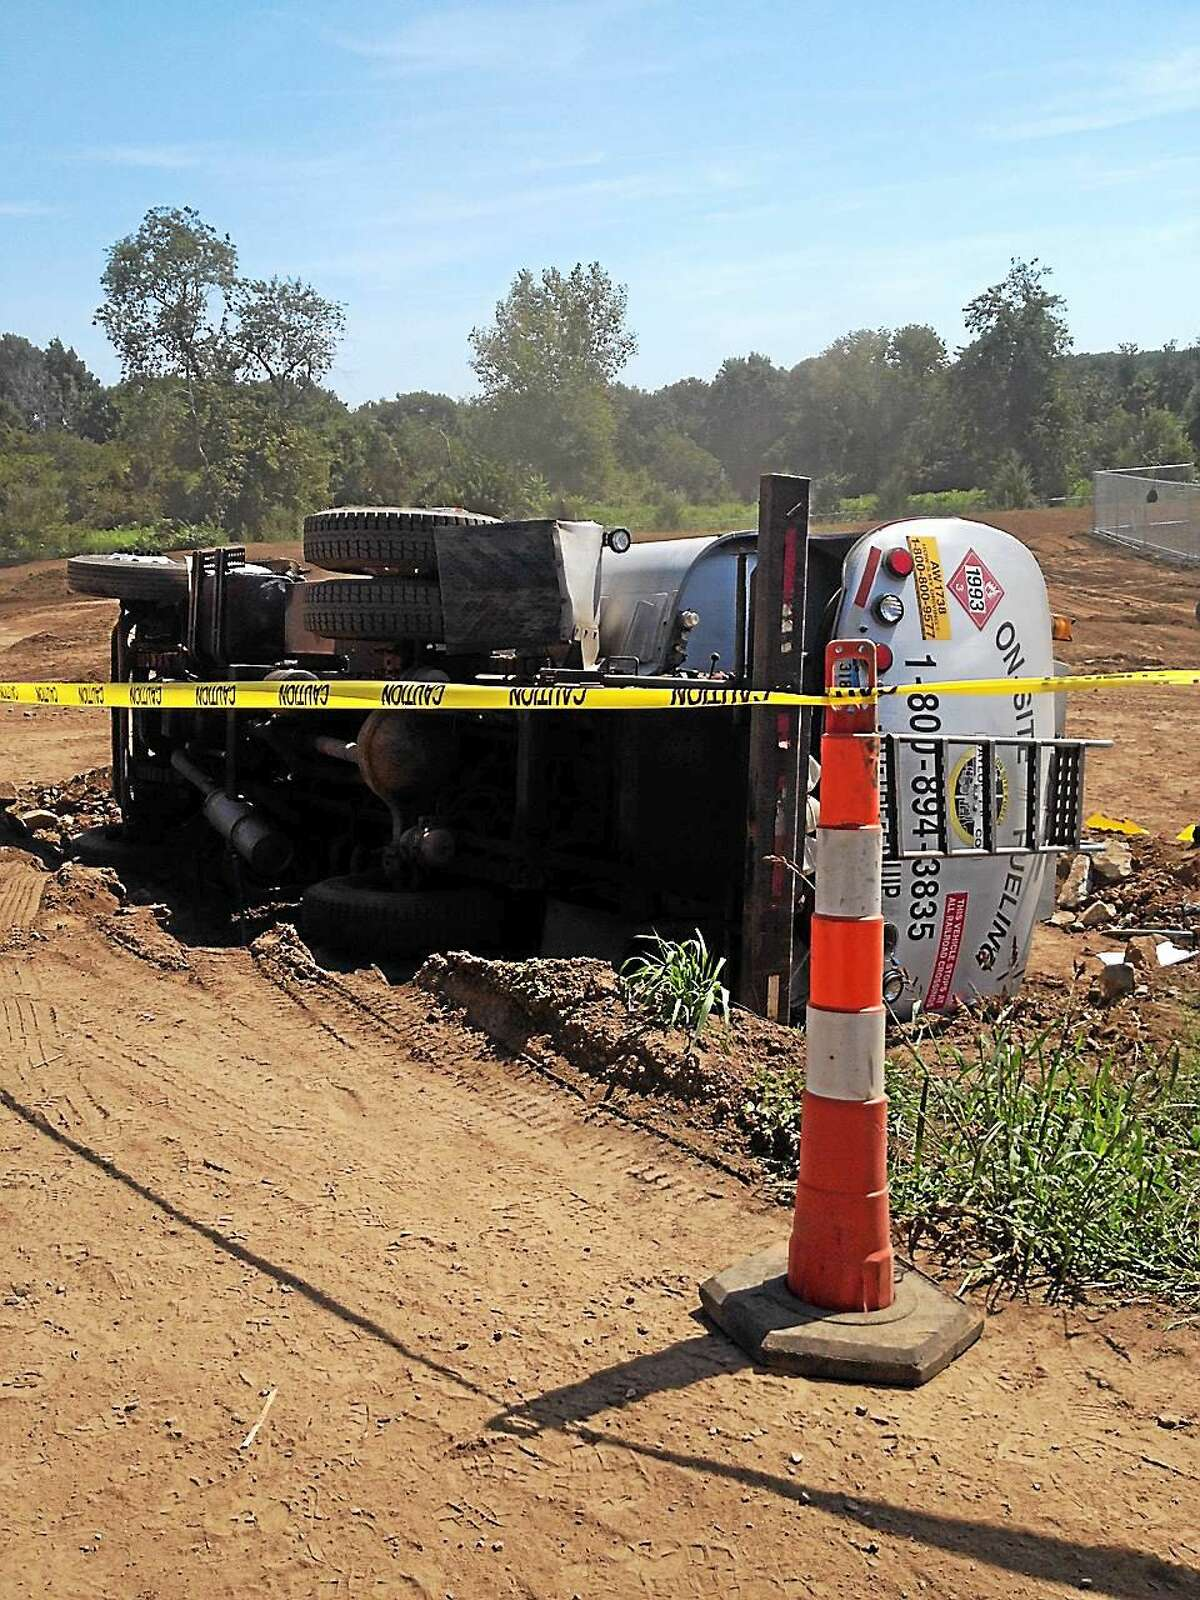 A fuel tanker flipped over near Guilford High School during construction Wednesday.